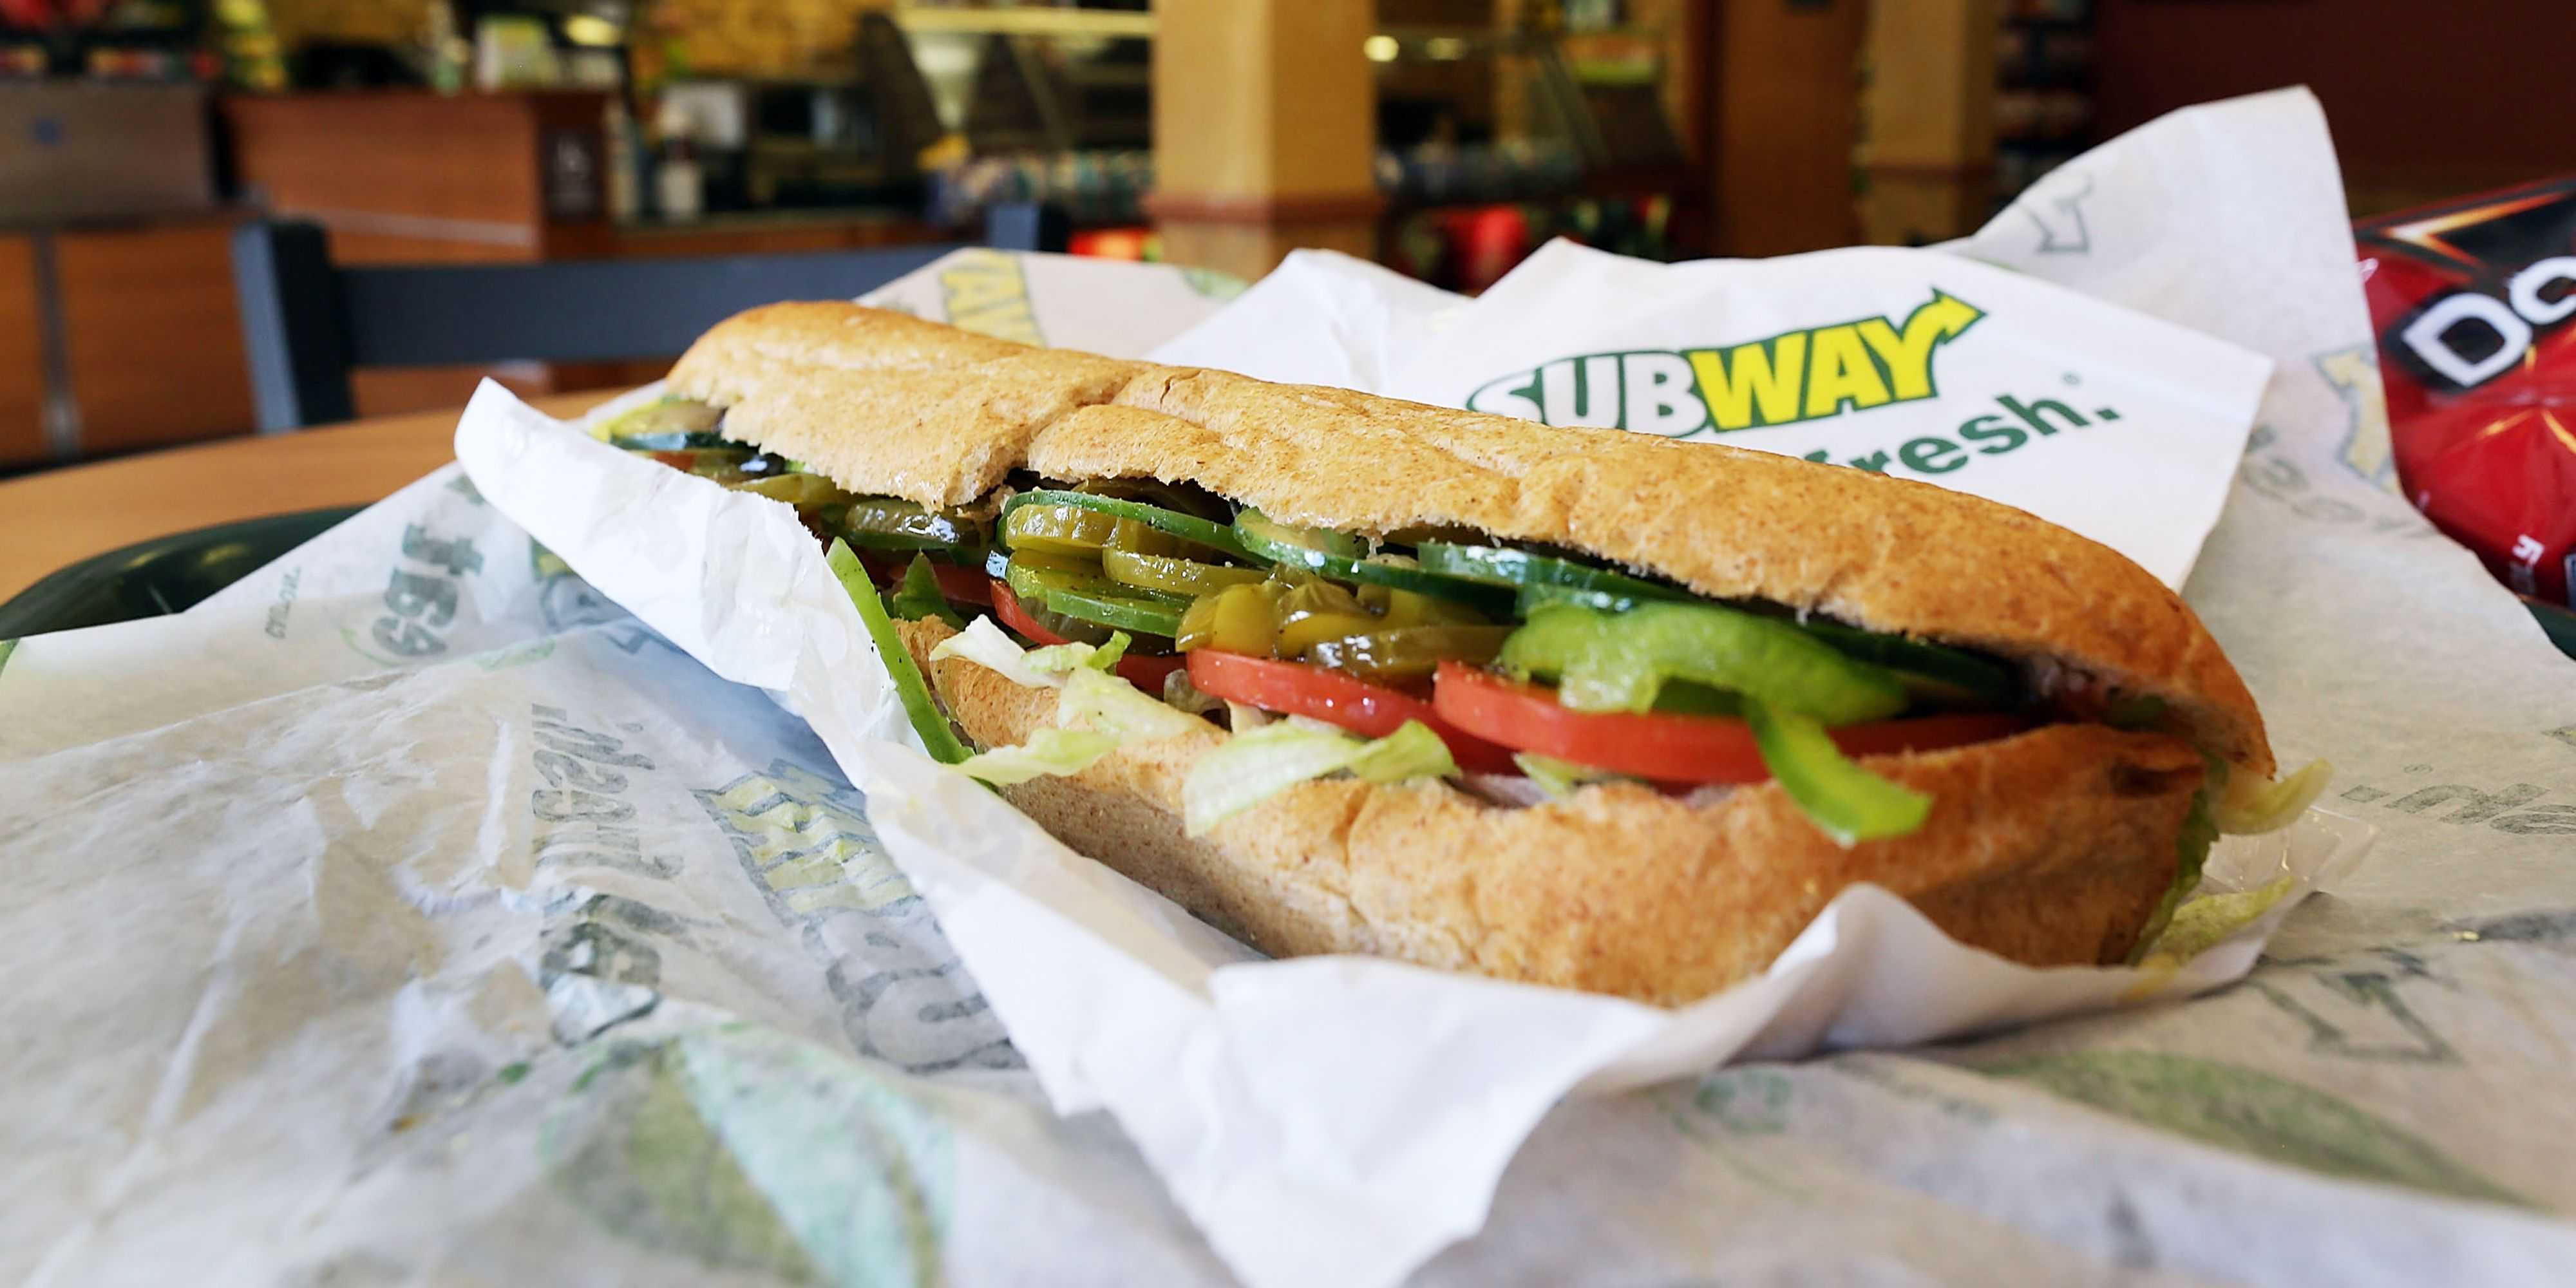 Fast Food Workers Reveal What You Should Never Order at